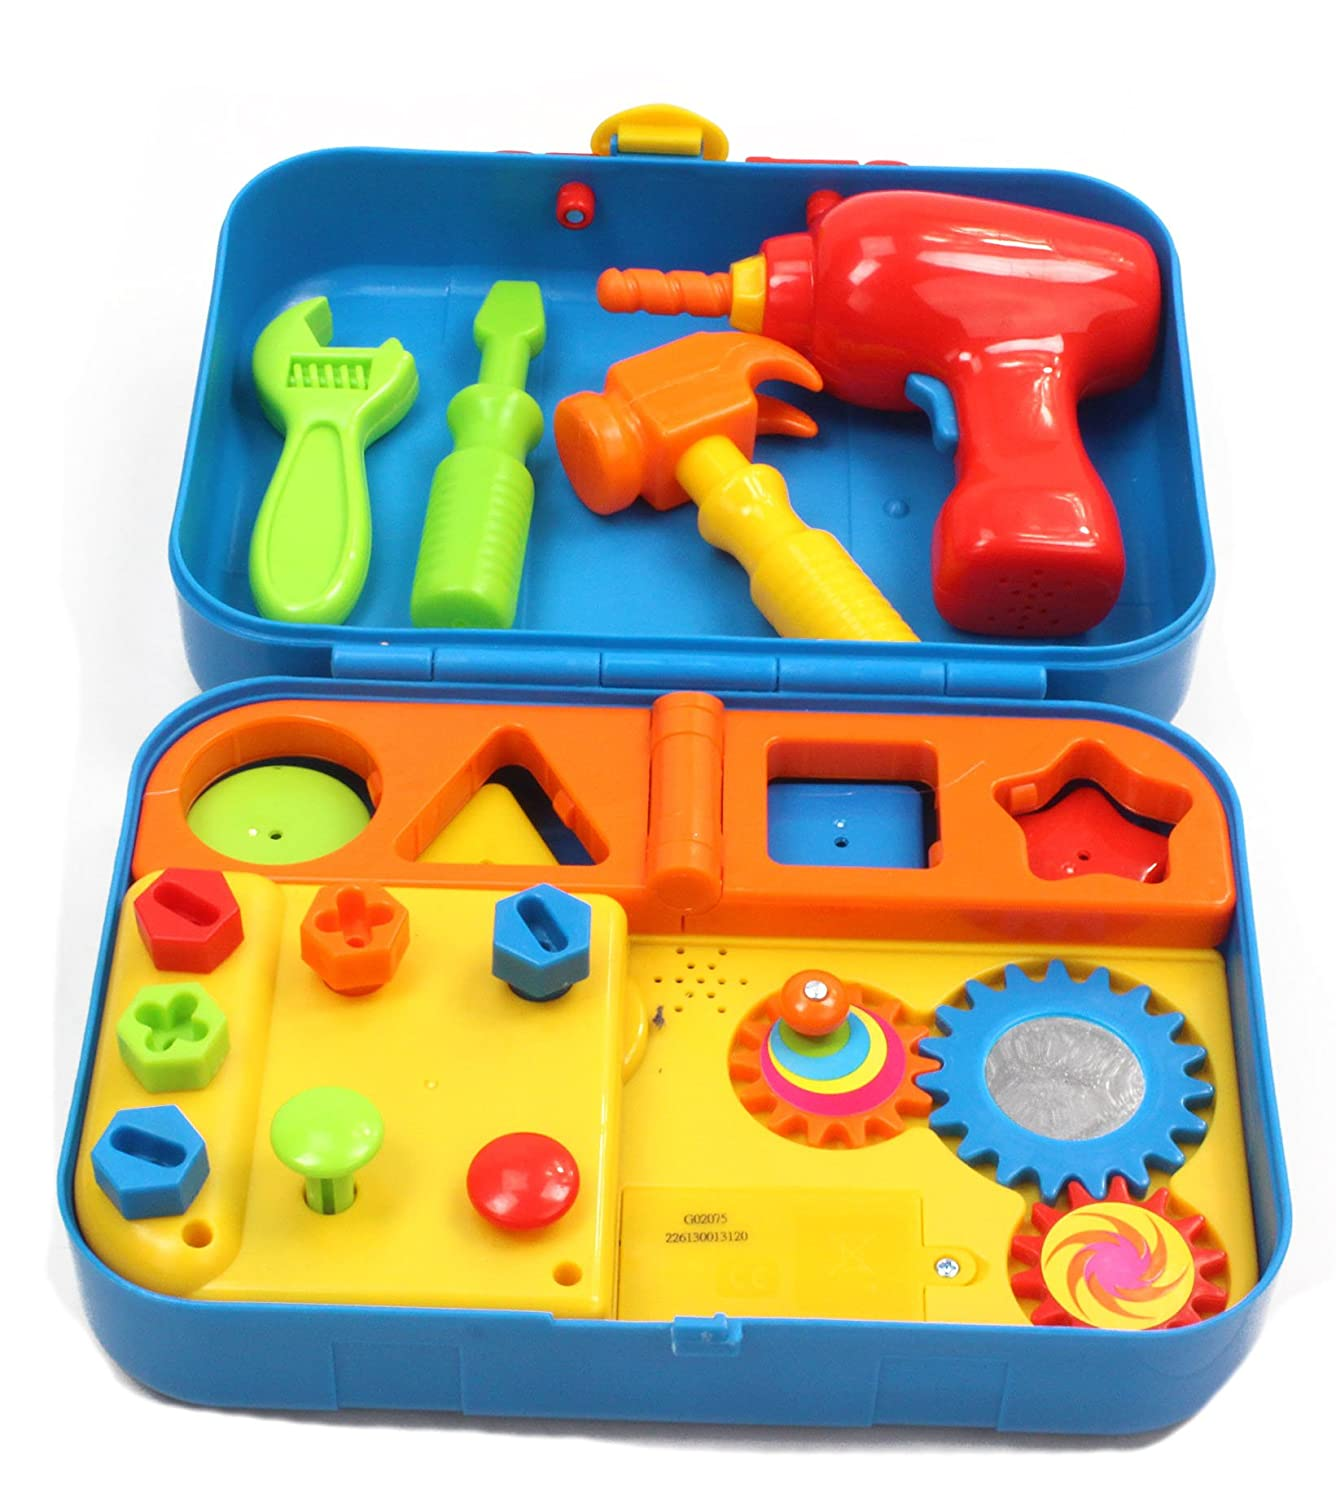 Toys For Boys 18 Months : Kidoozie cool toys tool set includes audio responses to